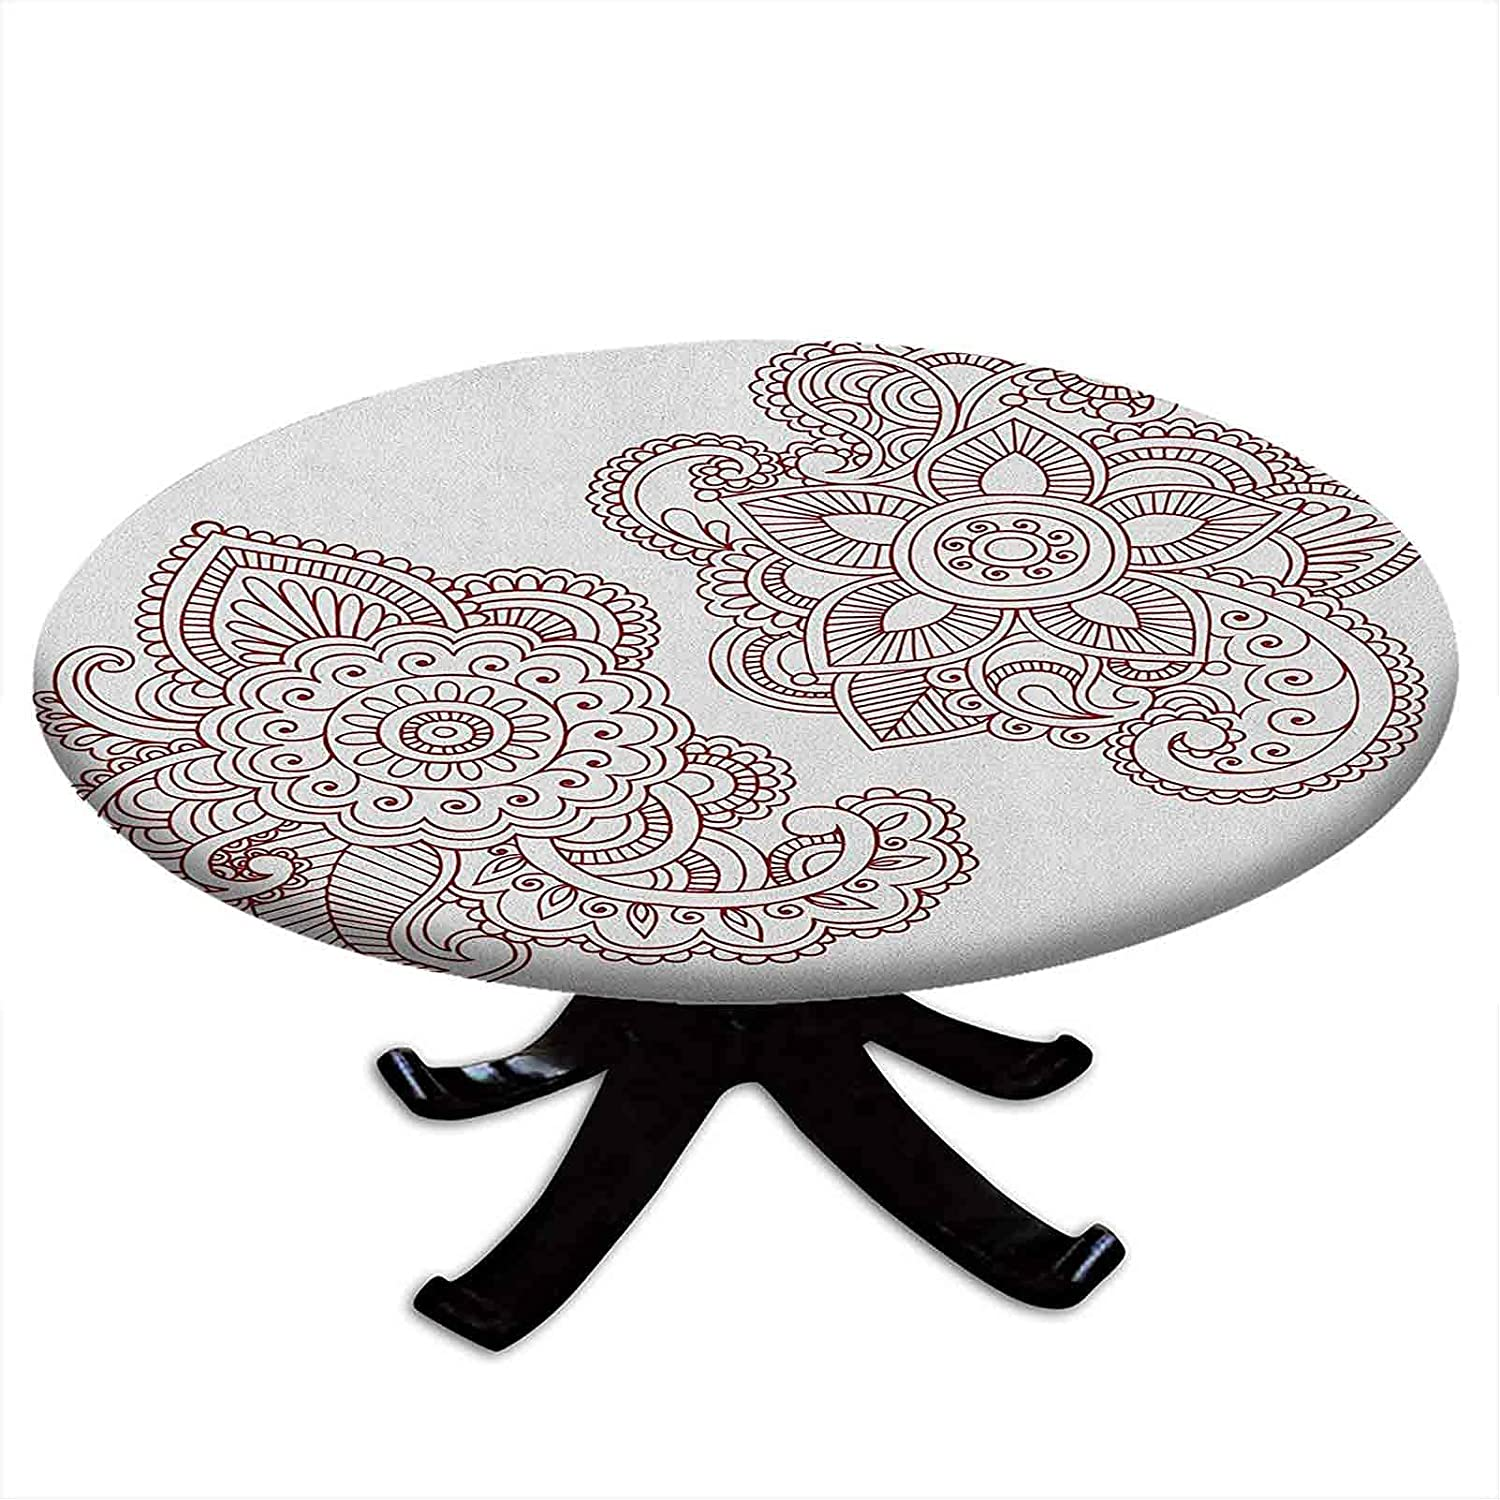 Max 78% OFF Max 48% OFF Round Fitted Henna Tablecloth Intricate Style Doodle Ornate Mot